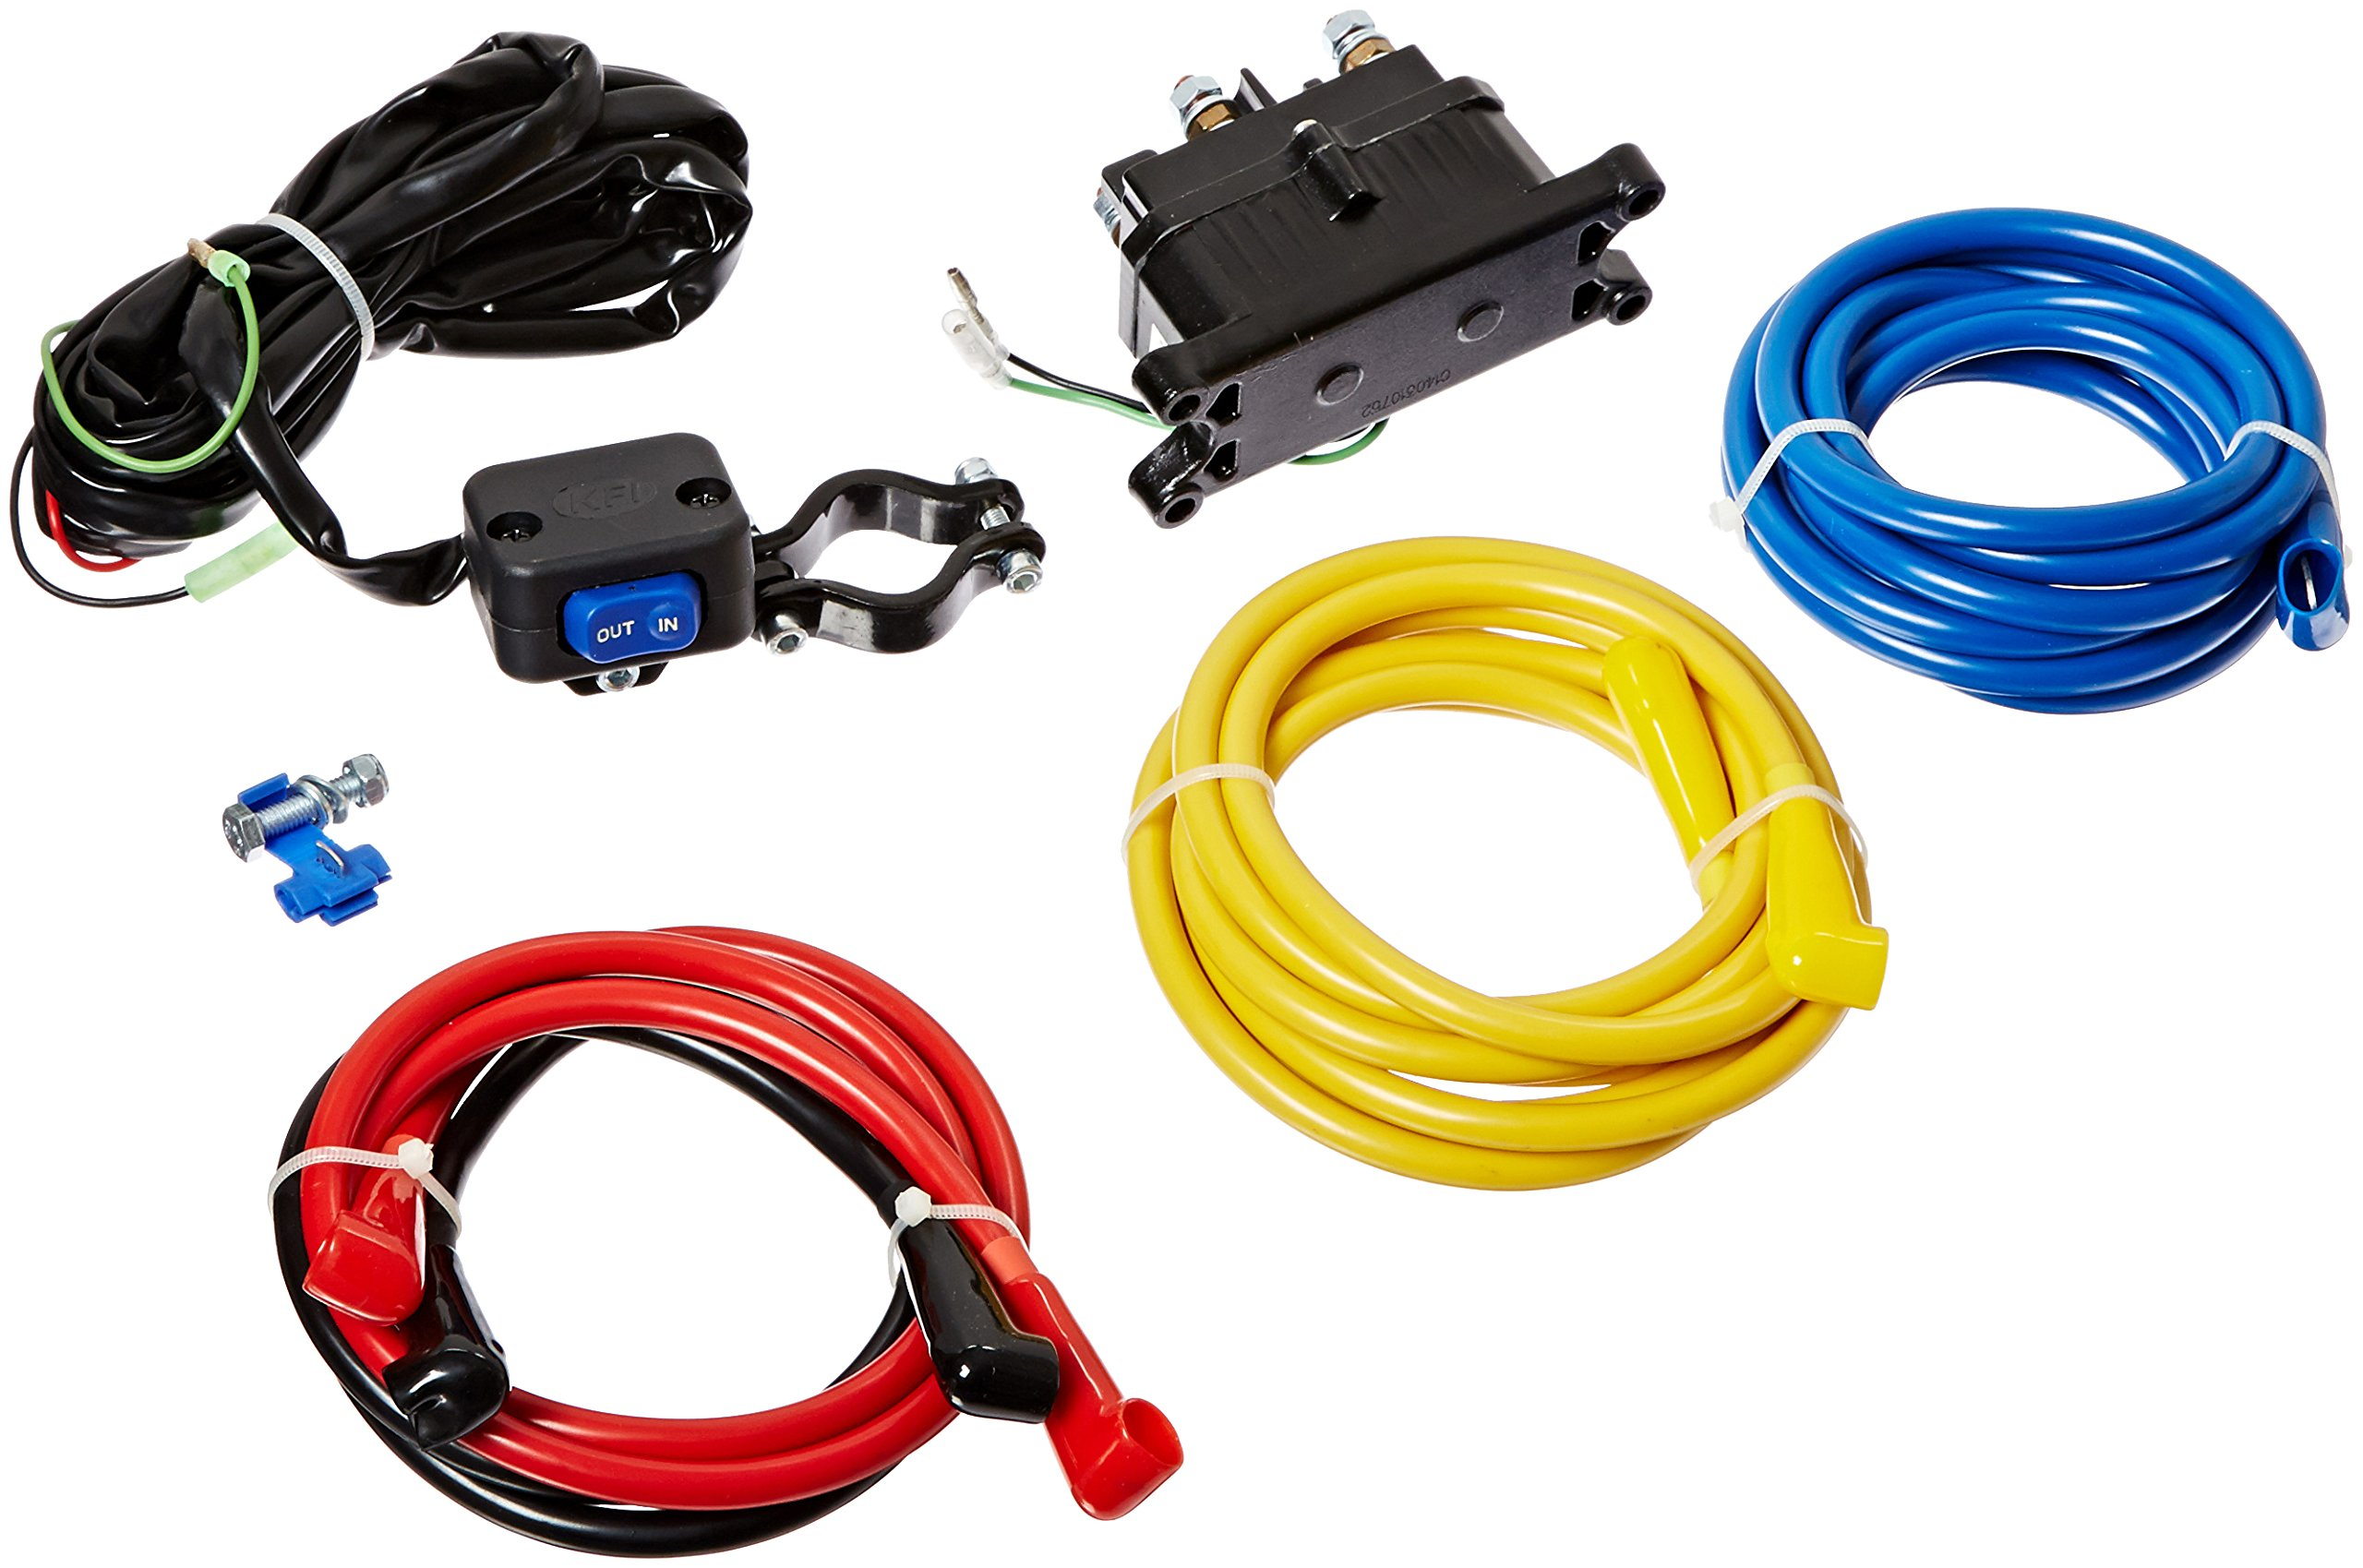 KFI Products ATV-WK Universal 12V Wiring Kit by KFI Products